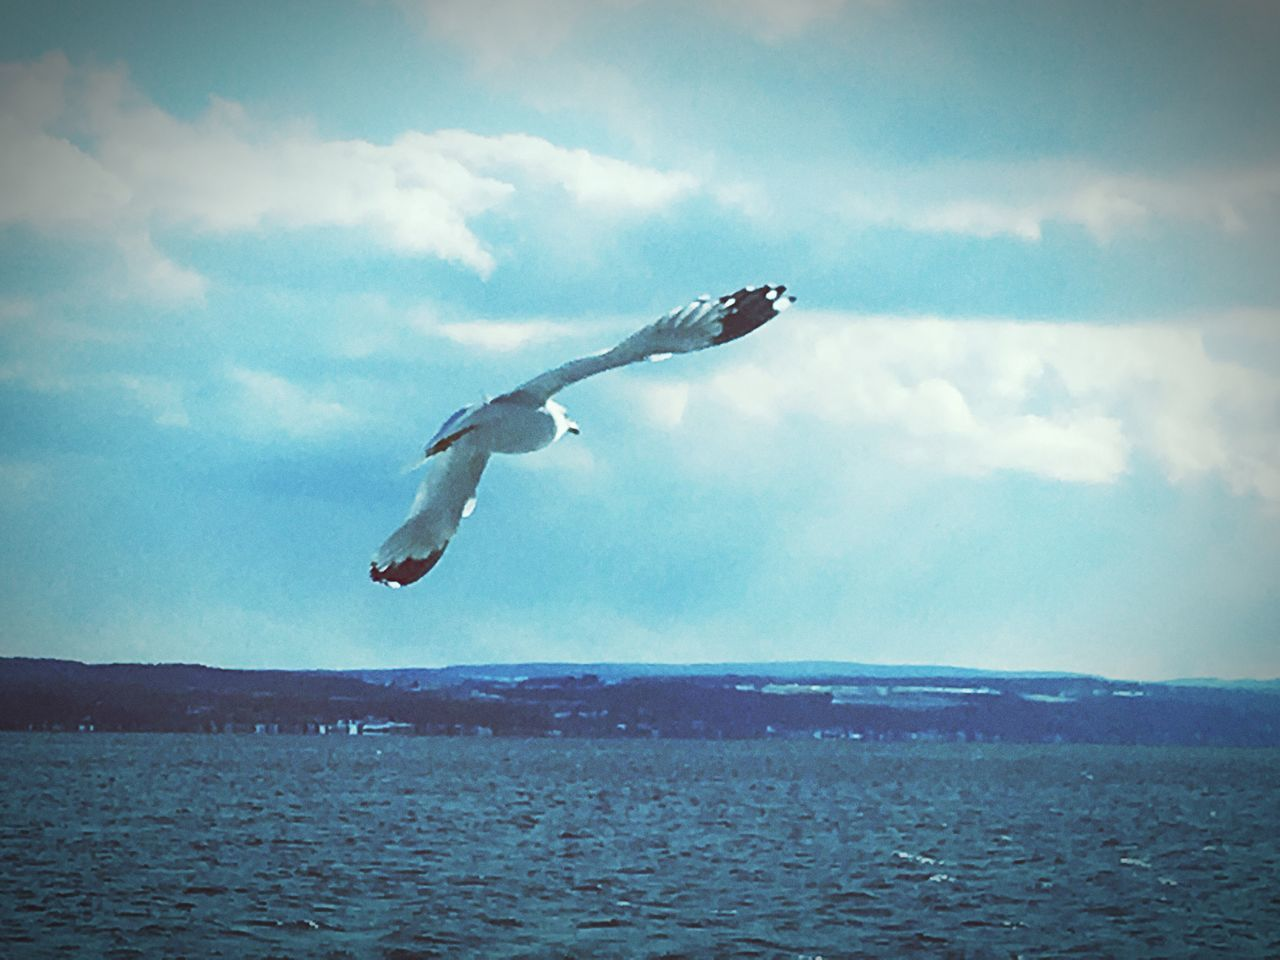 Bird Sky Cloud - Sky Flying Sea Nature Animals In The Wild Tranquility Scenics Animal Themes Seagull Water Outdoors Beauty In Nature One Animal Day No People Freedom Full Length